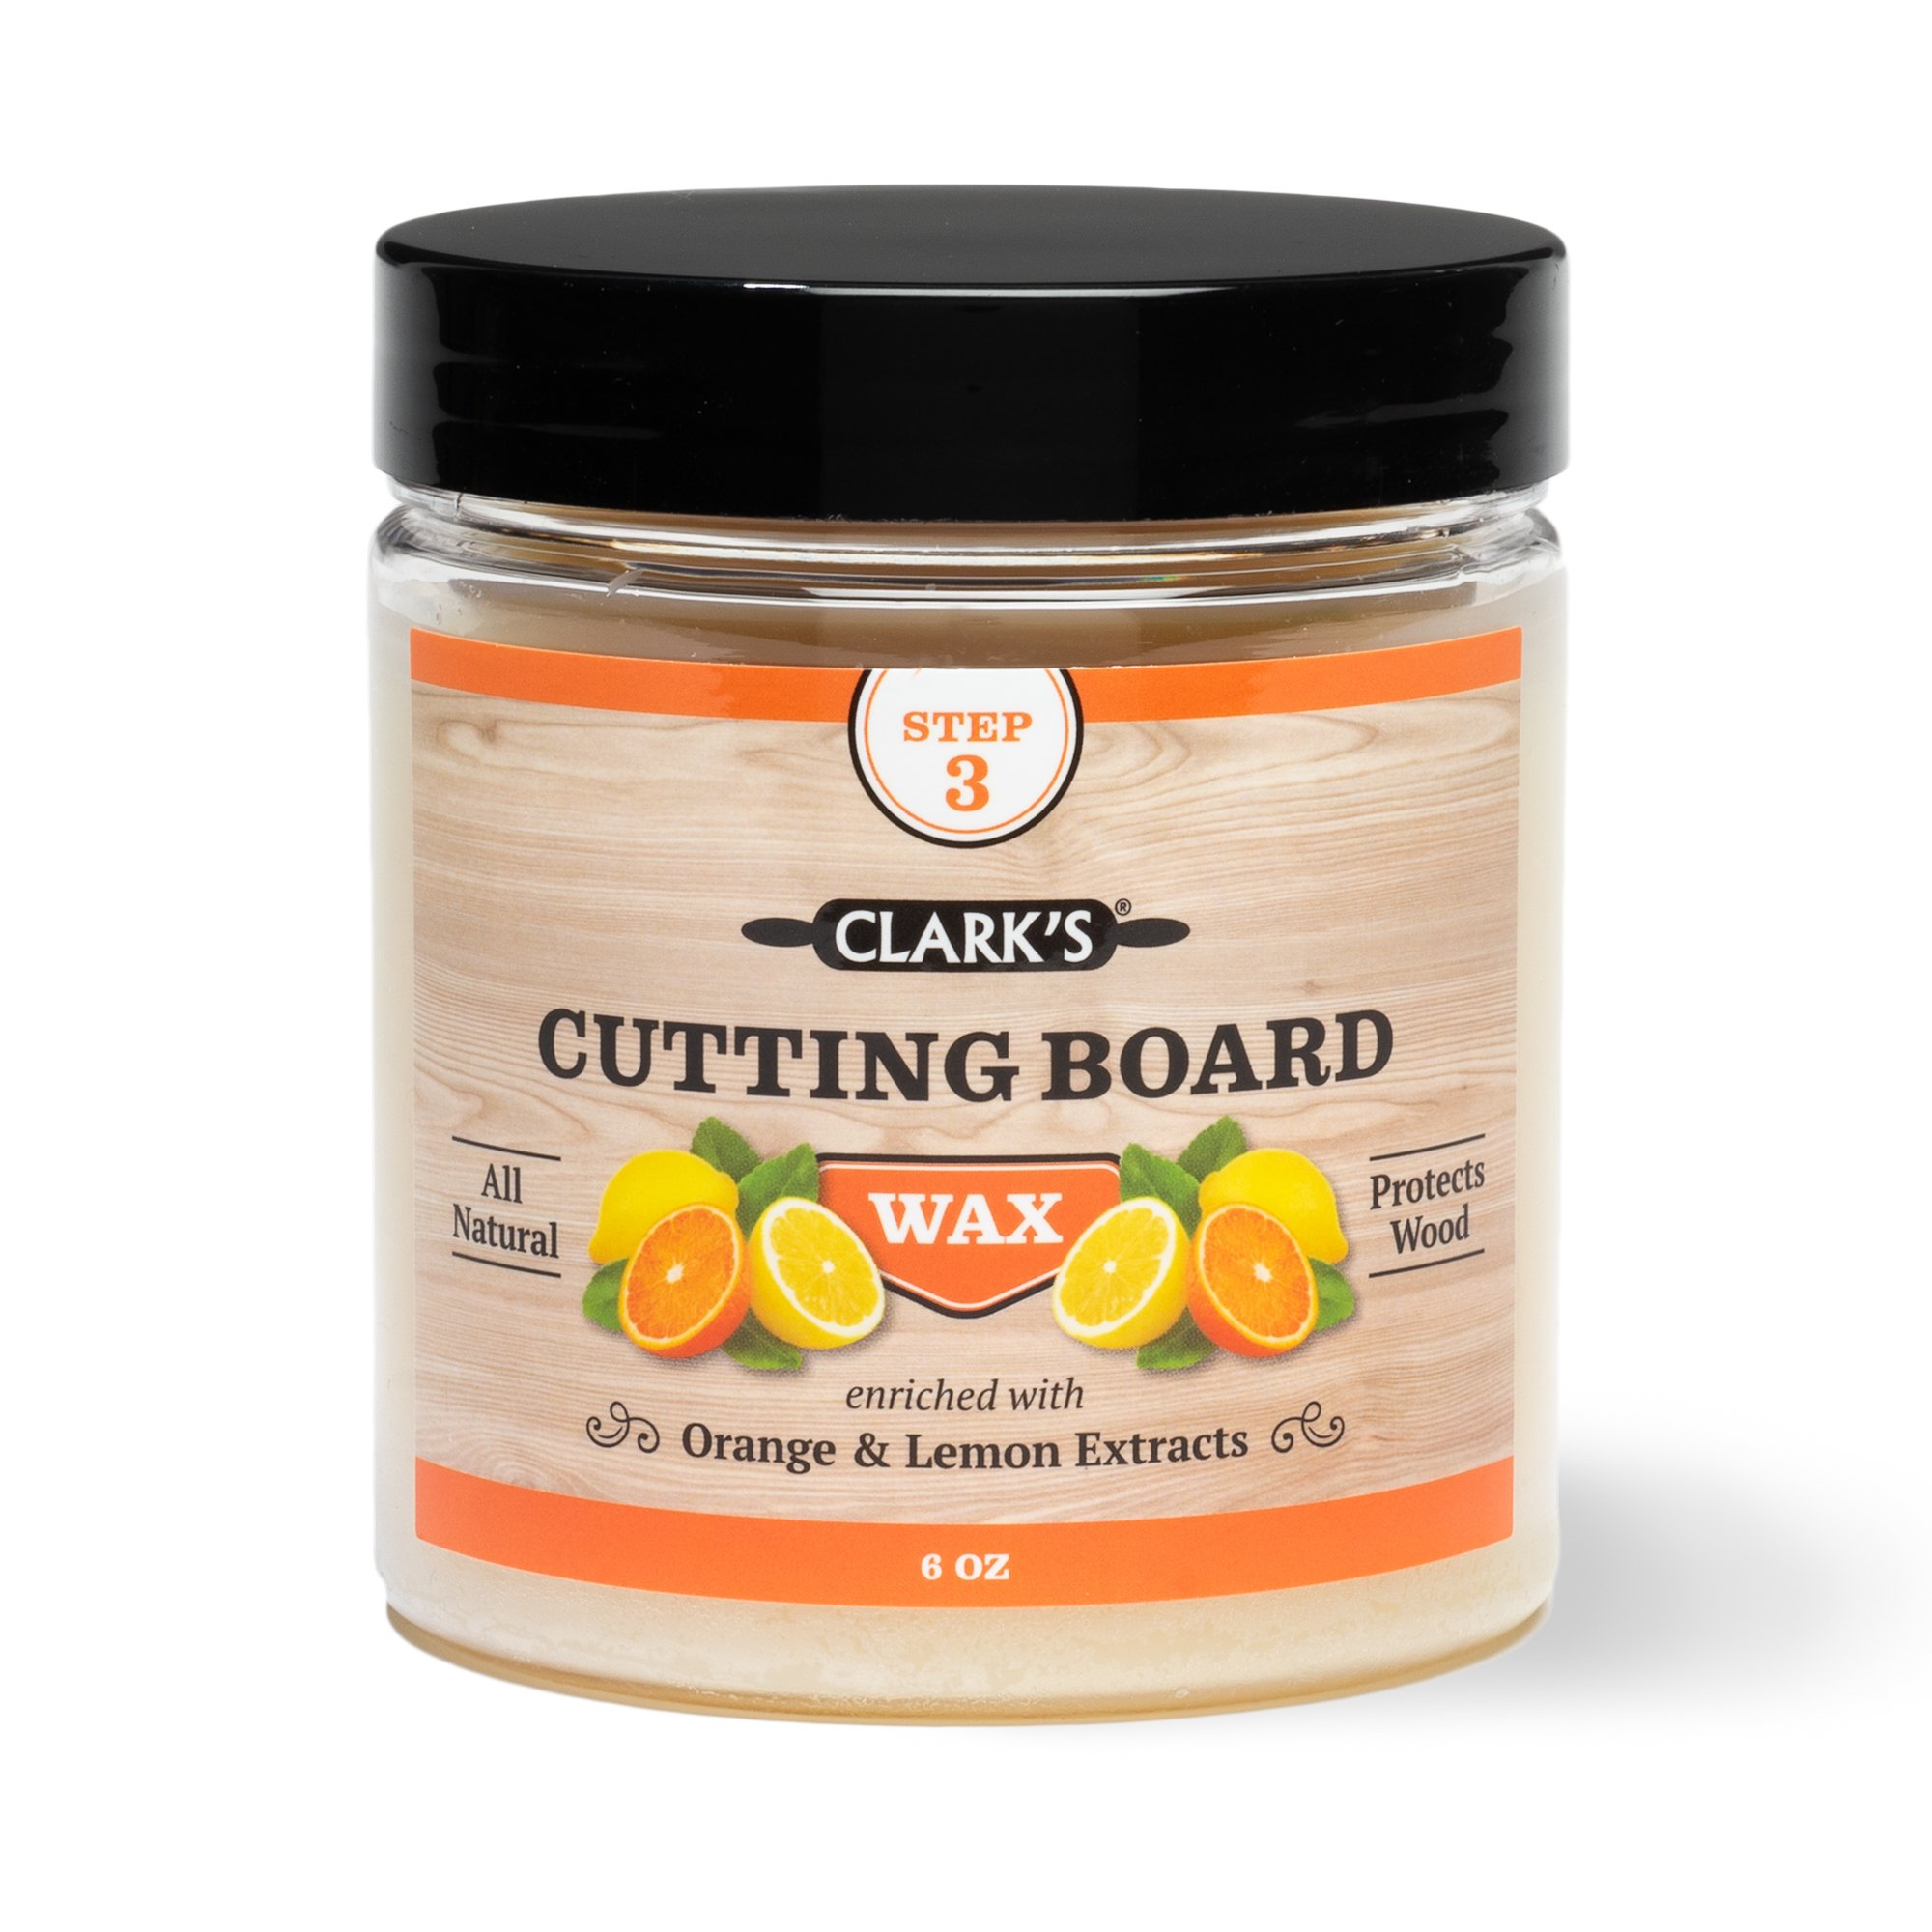 CLARK'S Cutting Board Finish Wax, Enriched with Lemon & Orange Oils ,Made with Natural Beeswax and Carnauba Wax,Butcher Block Wax, (6 ounces) by CLARKS